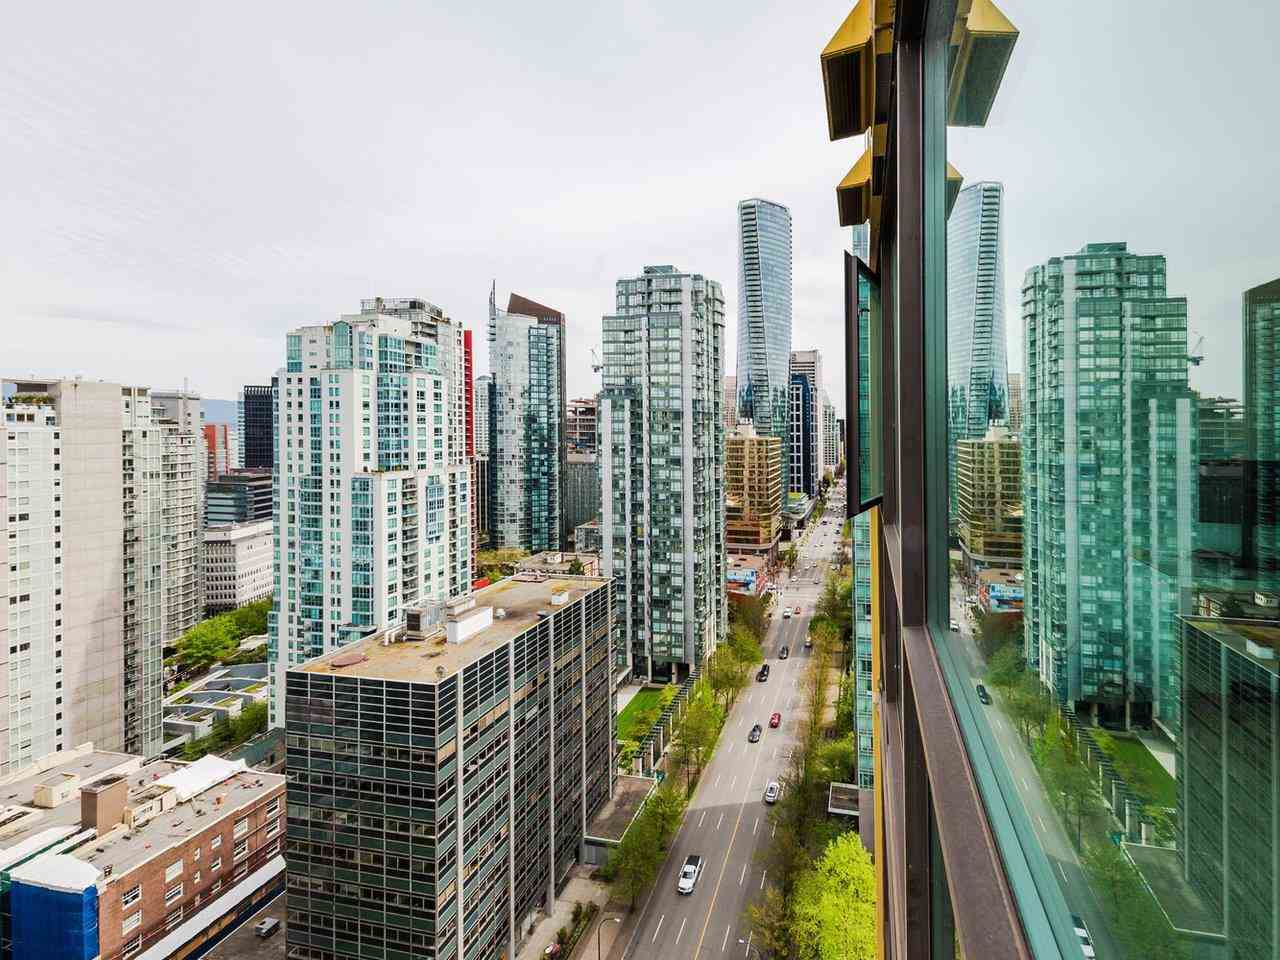 2701 1331 ALBERNI STREET - West End VW Apartment/Condo for sale, 3 Bedrooms (R2576100) - #22